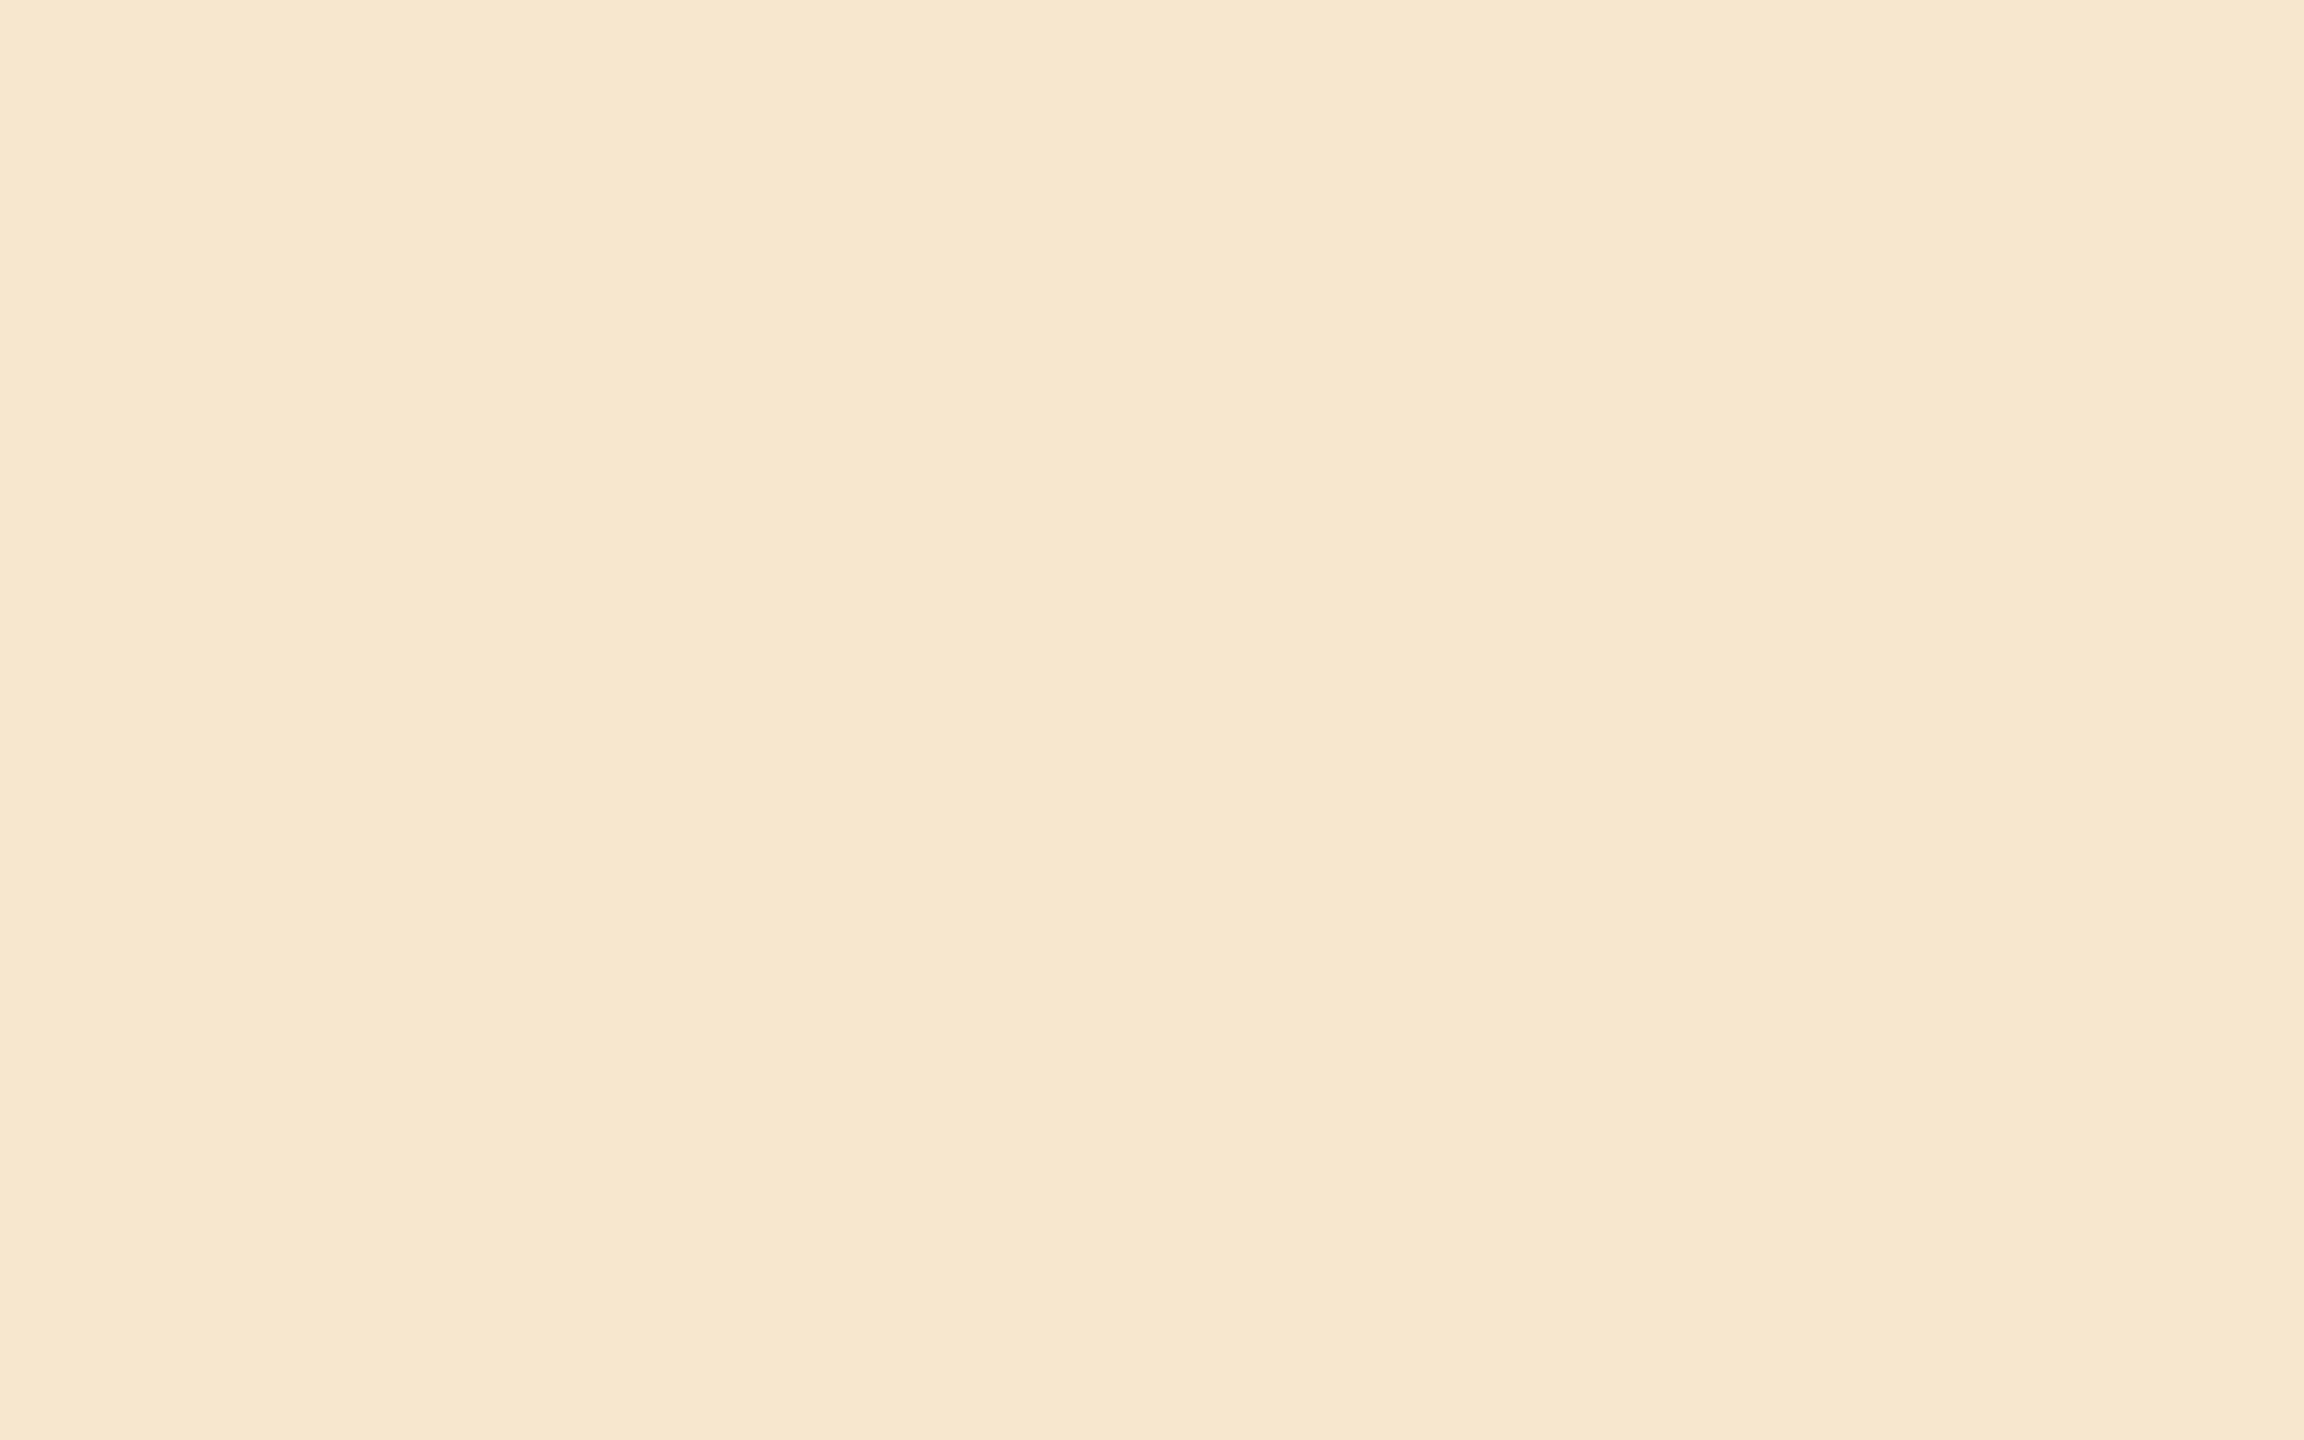 2304x1440 Champagne Solid Color Background